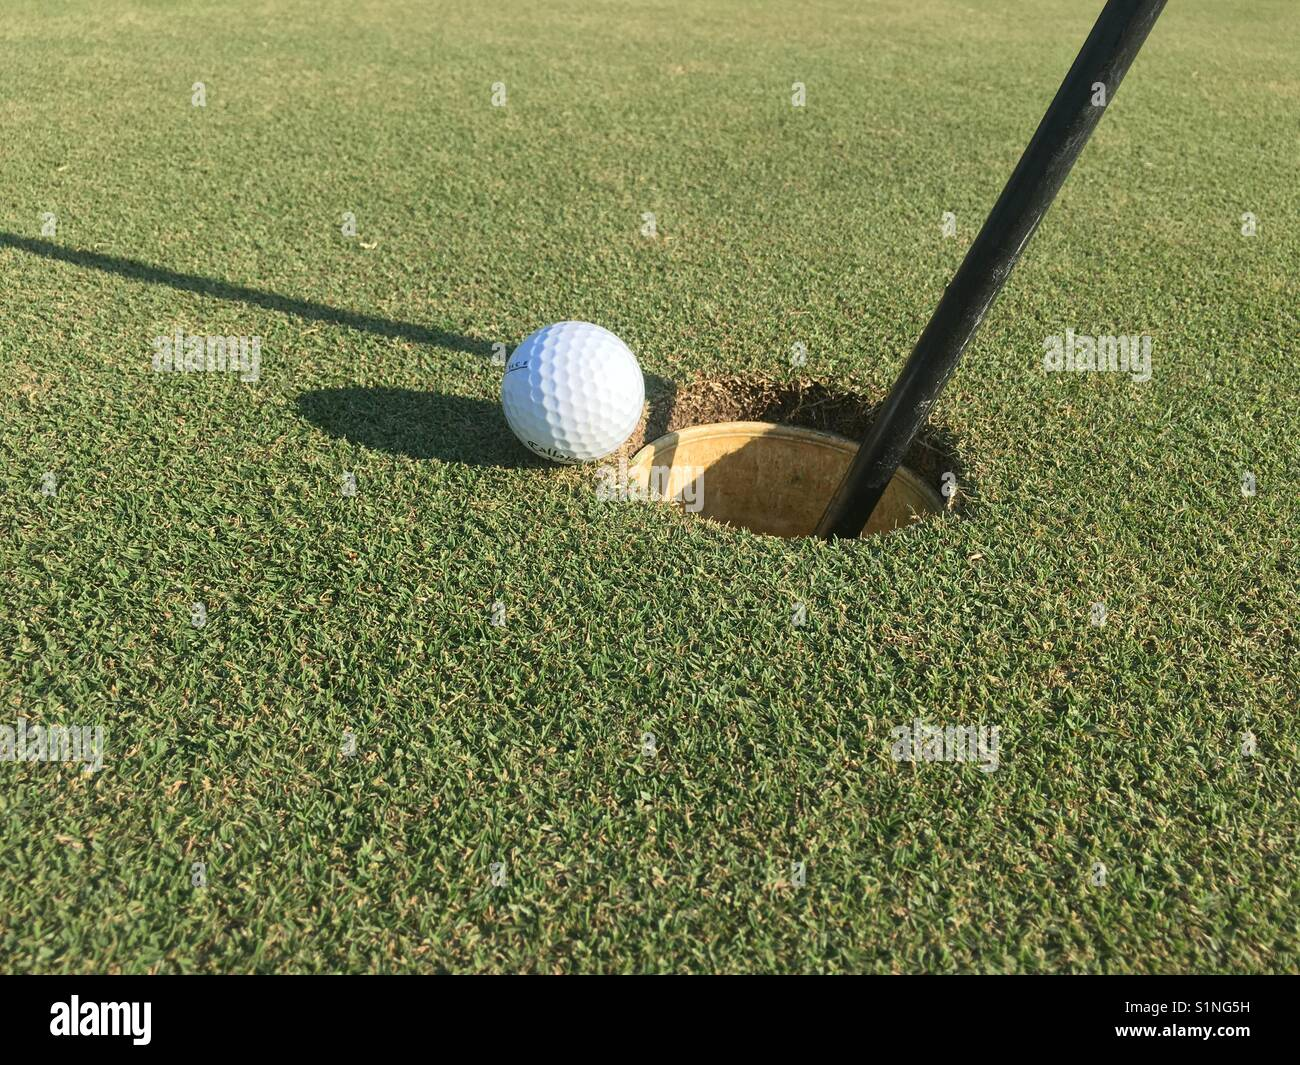 Golf Ball on the Edge - Stock Image